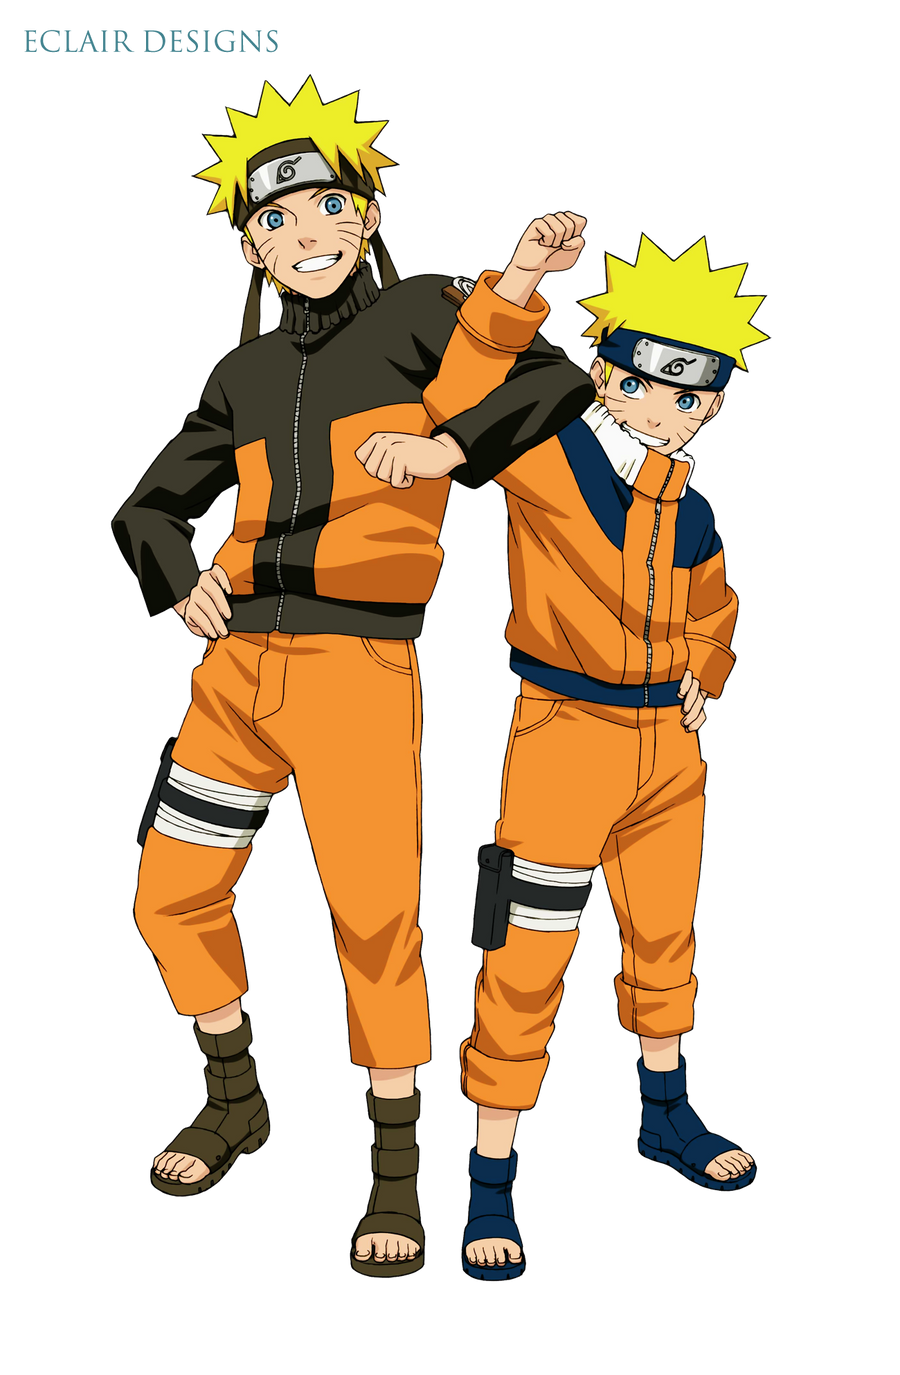 Naruto Charset & MegaMan Charset and Faceset in RPG Maker VX